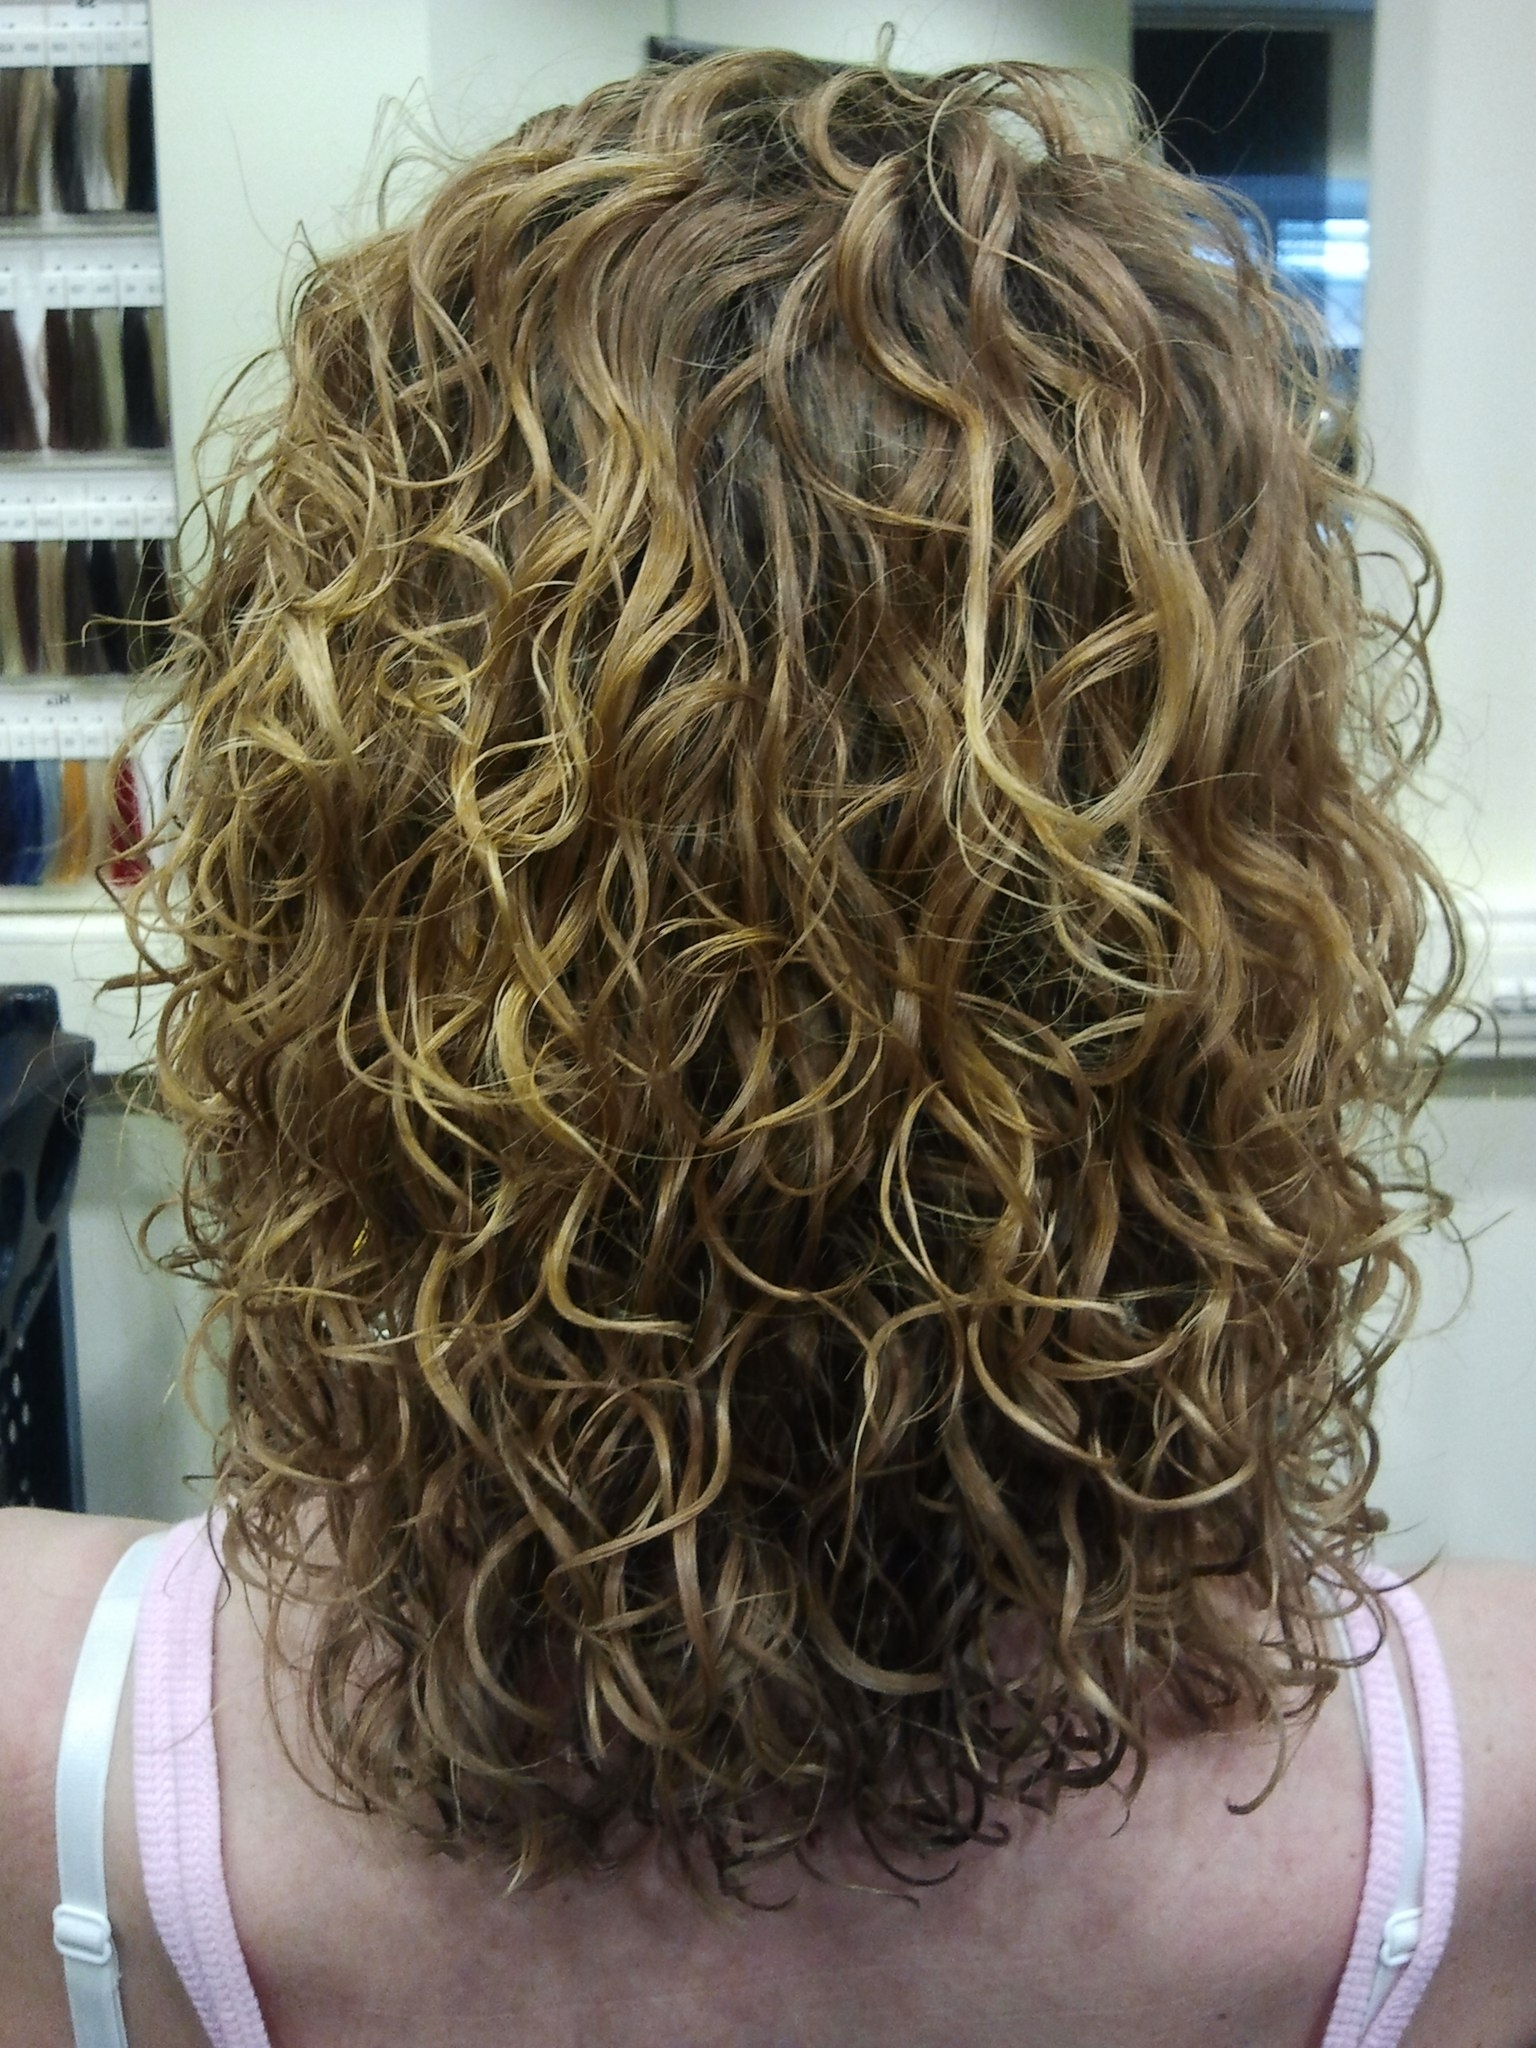 15 Ideas Of Shaggy Perm Hairstyles